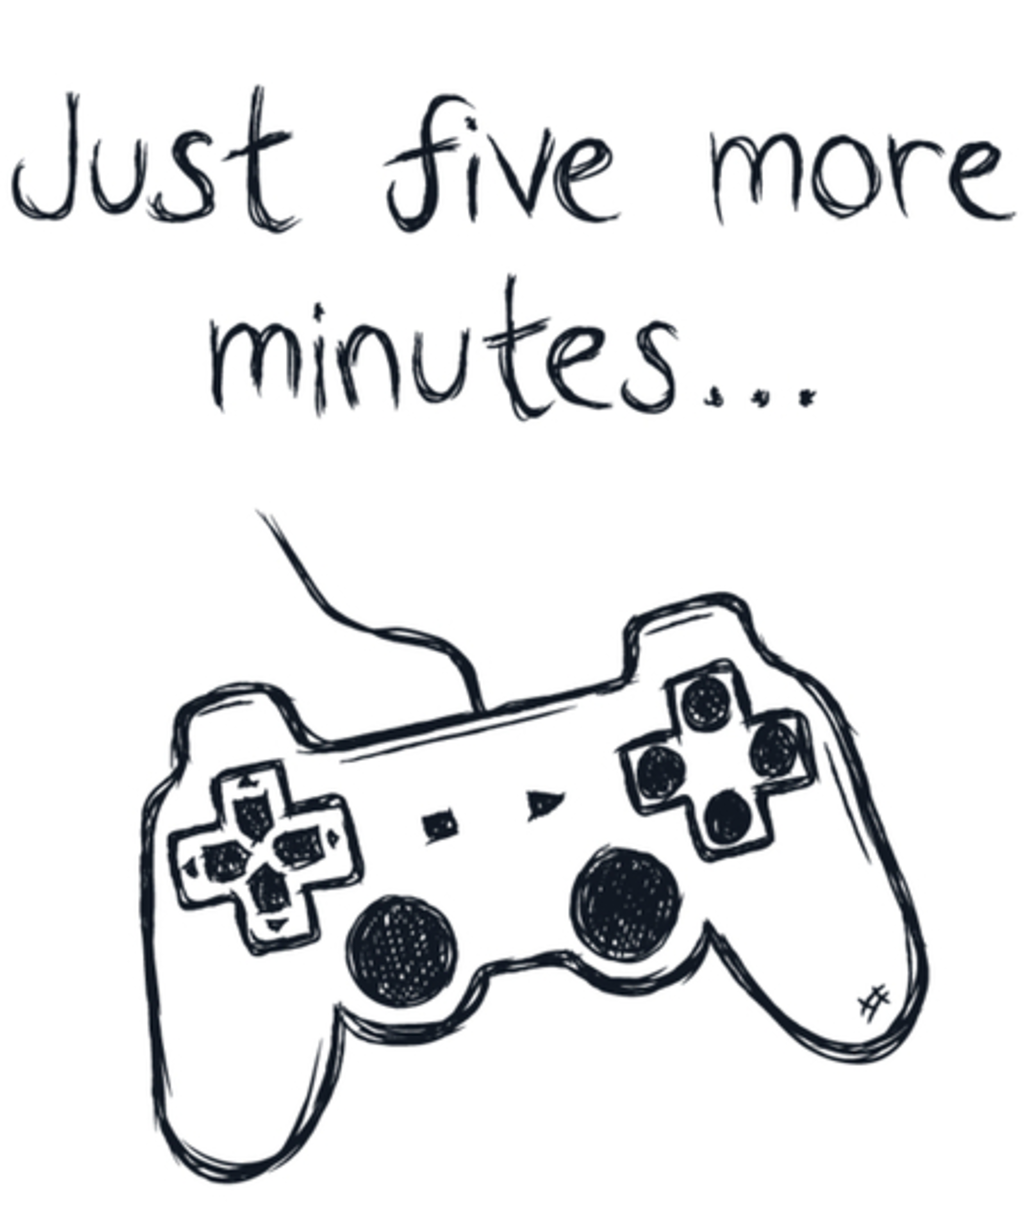 Qwertee: Just five more minutes